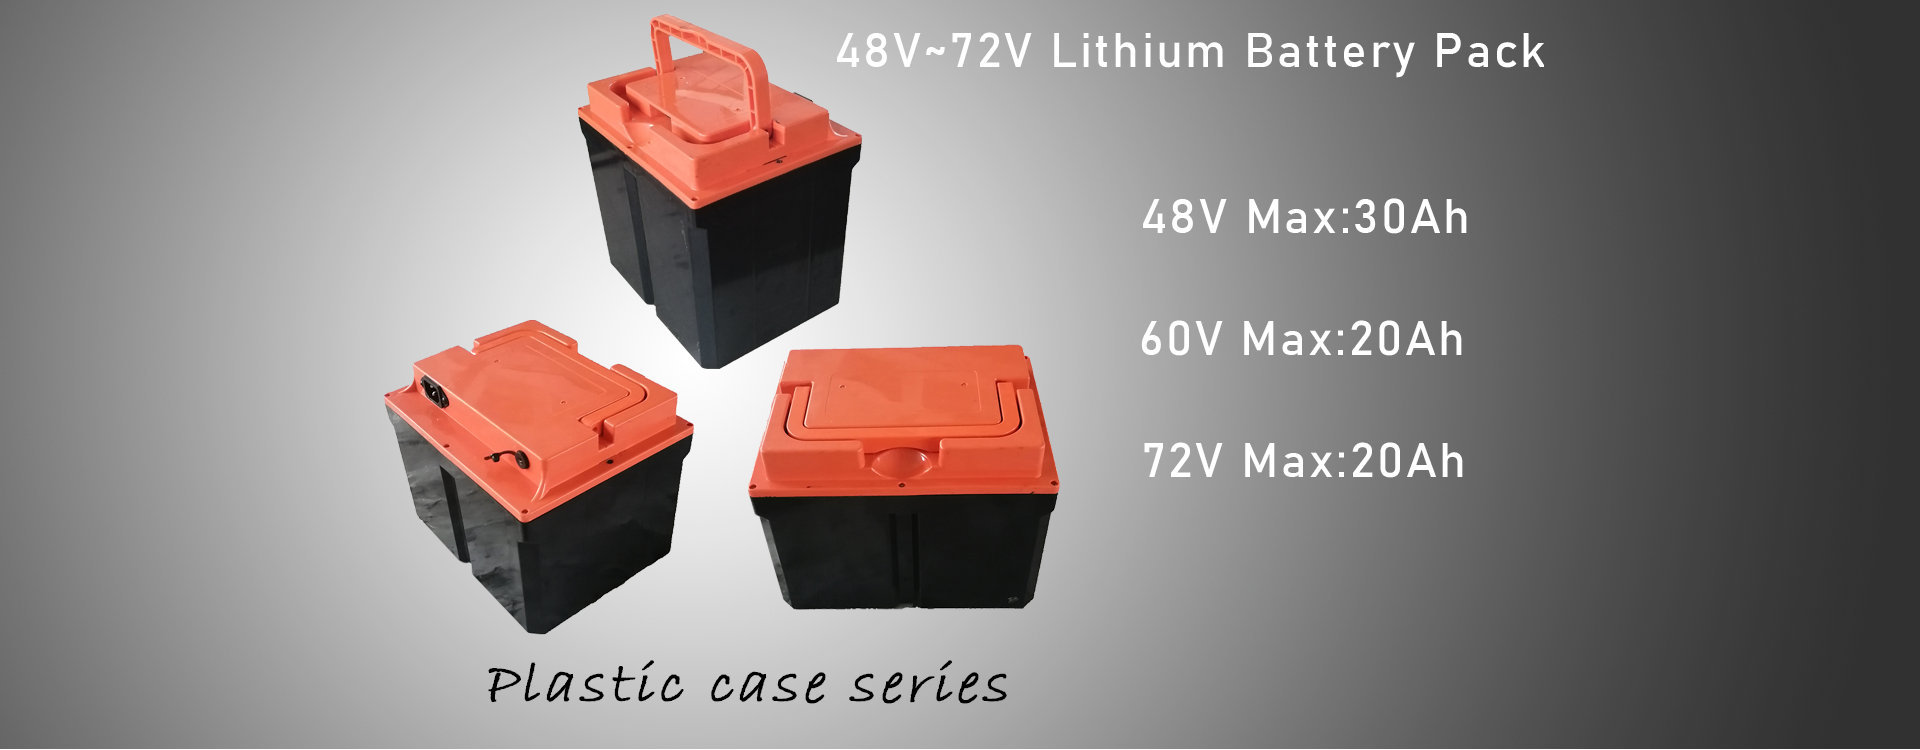 https://www.lithiumpro.com/solar-battery-lifepo4-12v100ah-lead-acid-battery-replacement-p00138p1.html